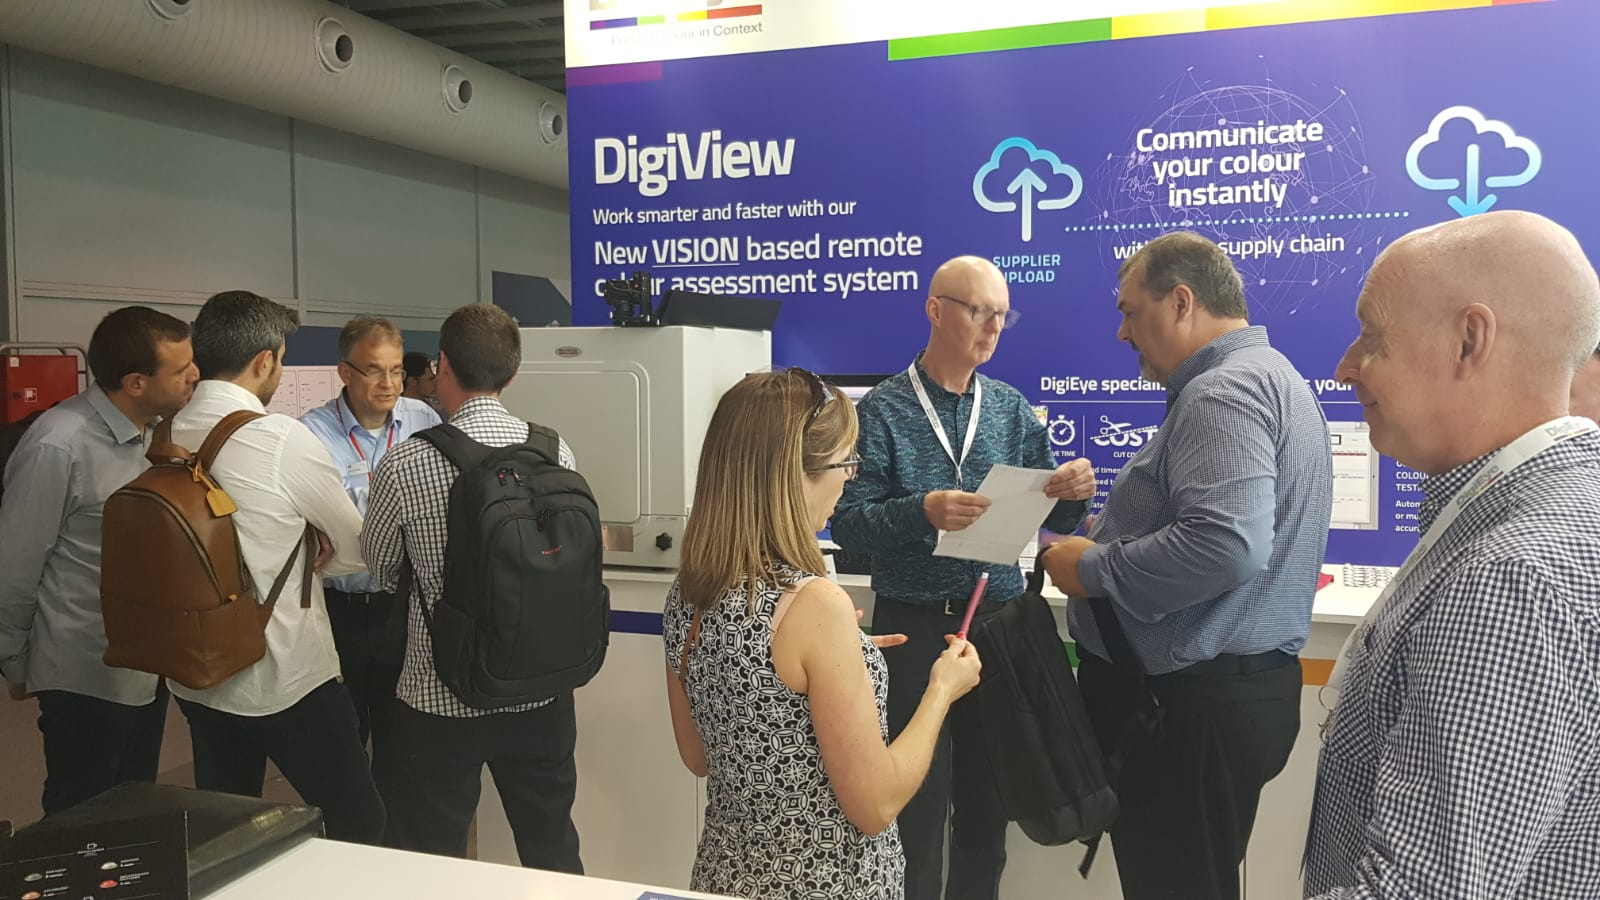 Many visitors interested in exploring uses of the DigiView system